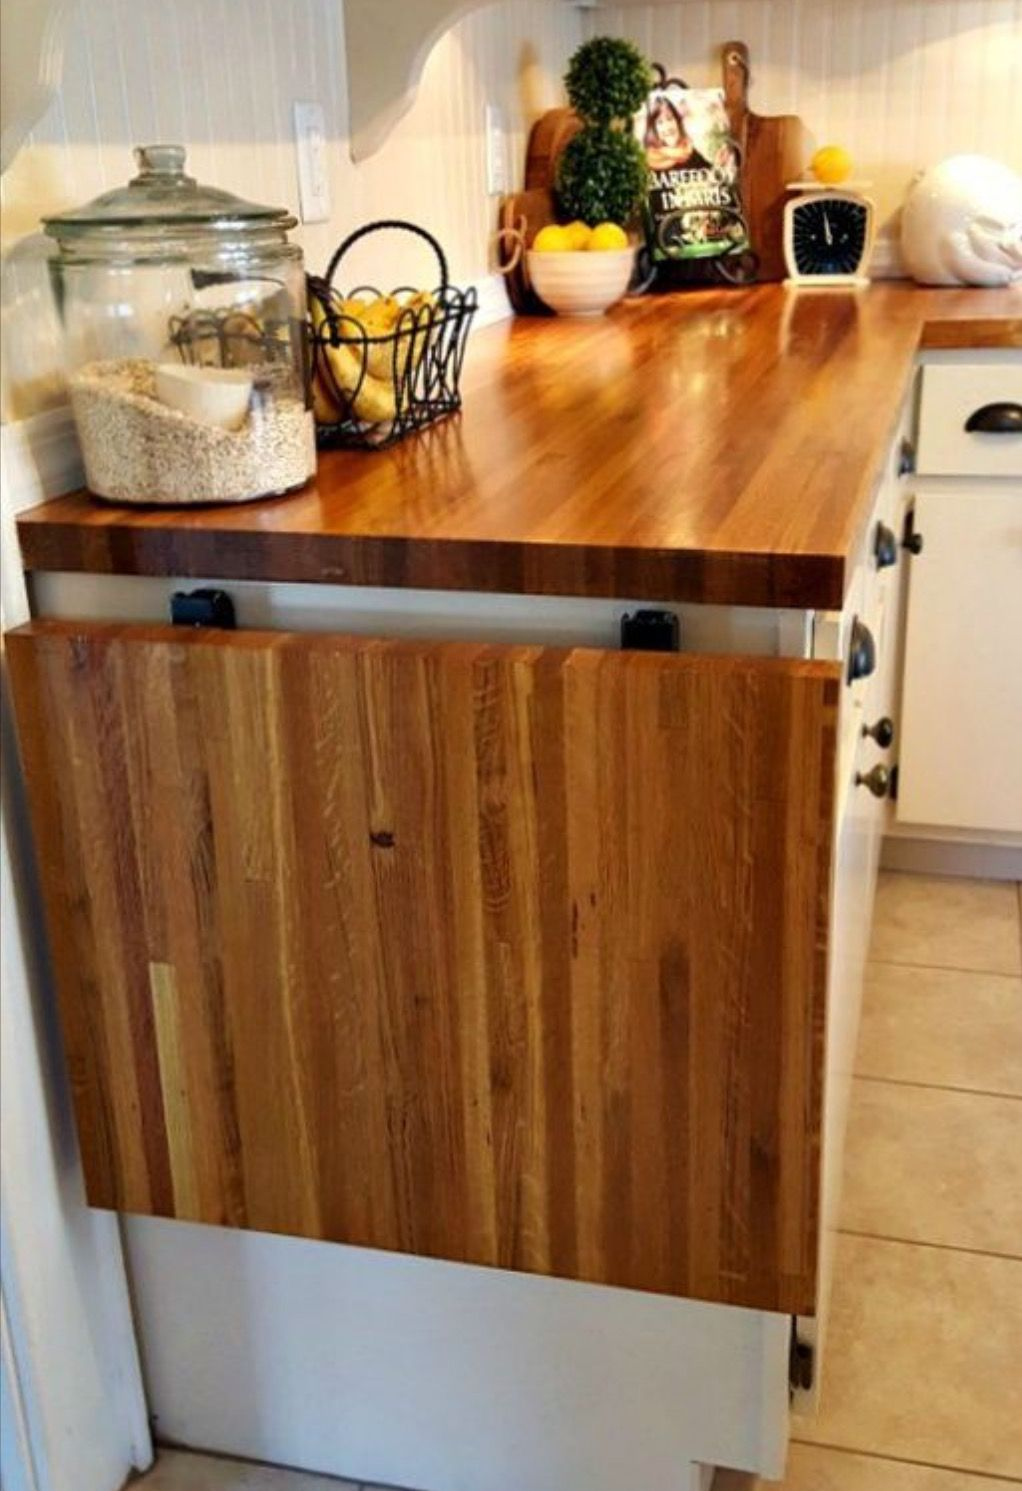 Flip up table at end of counter | Home & Decoration | Pinterest ...